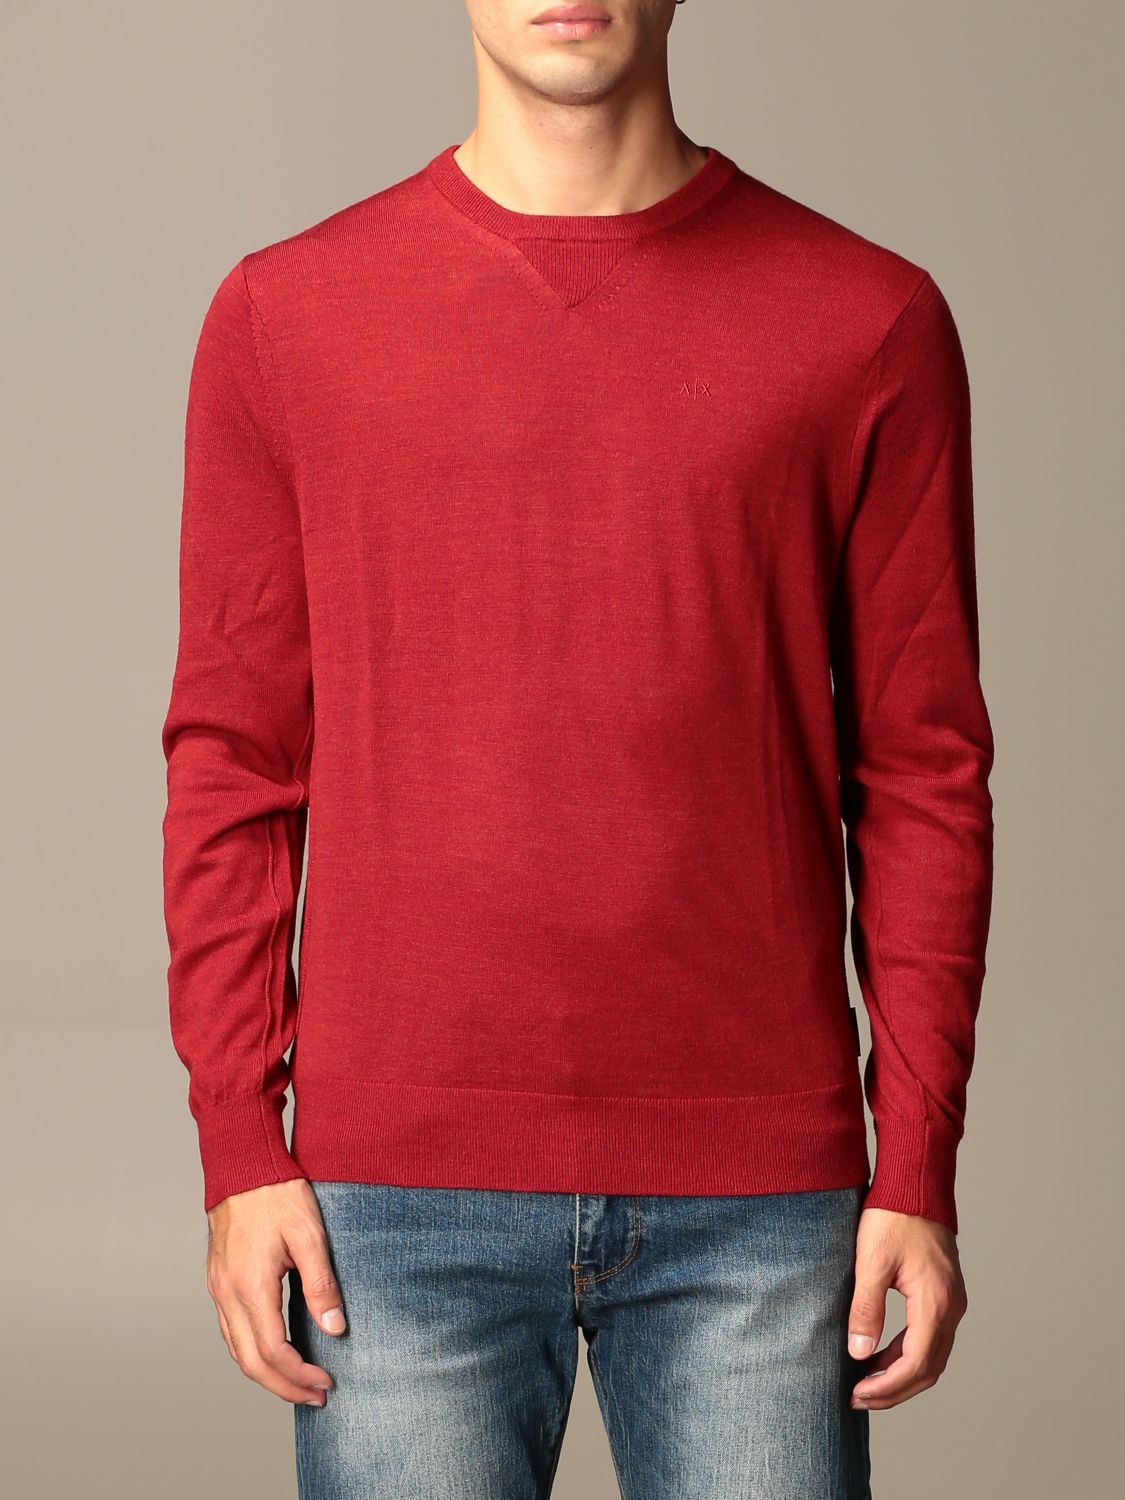 Jumper Armani Exchange: Jumper men Armani Exchange red 1